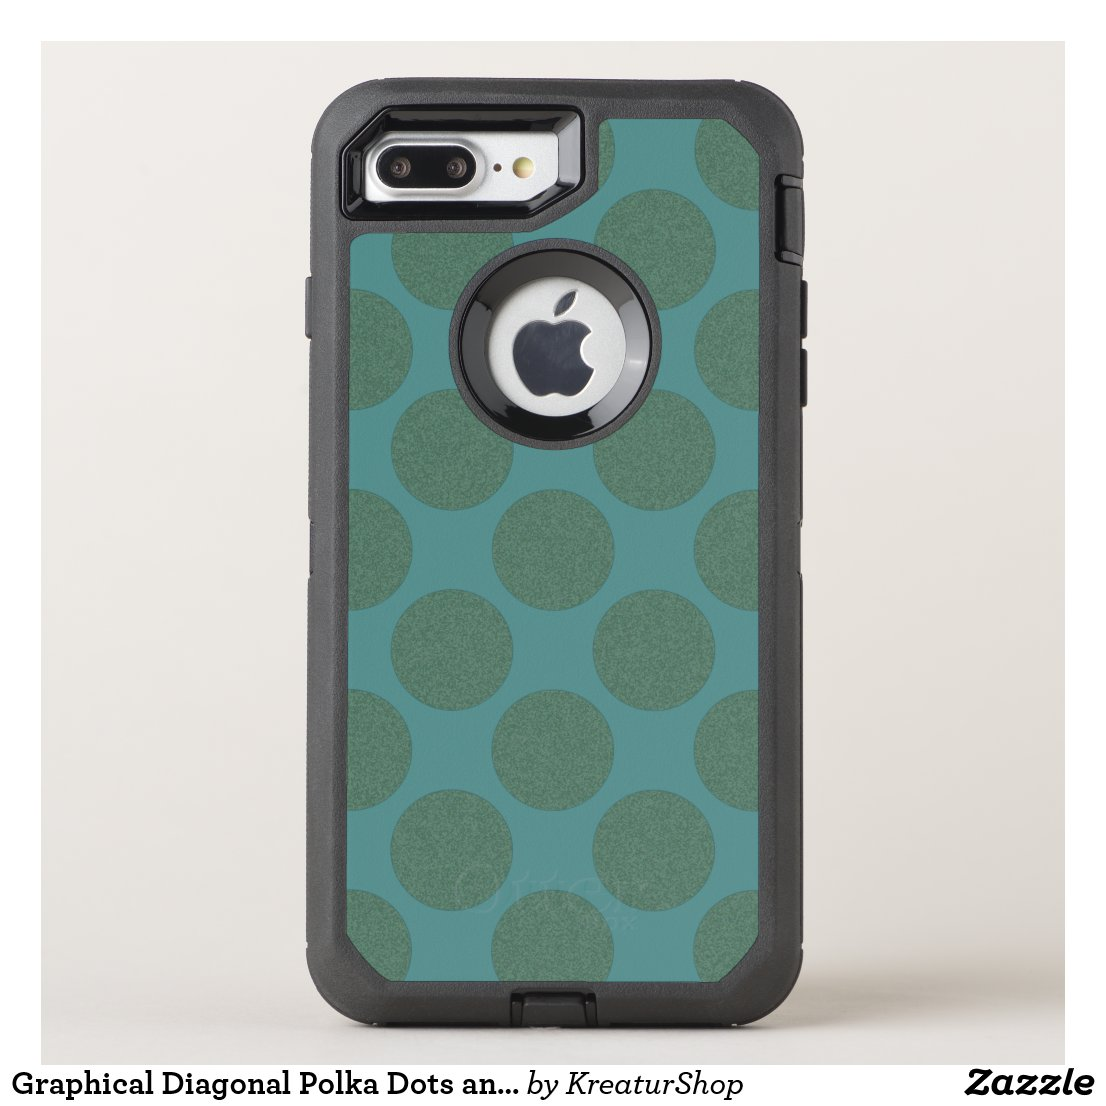 Graphical Diagonal Polka Dots any Color on Teal